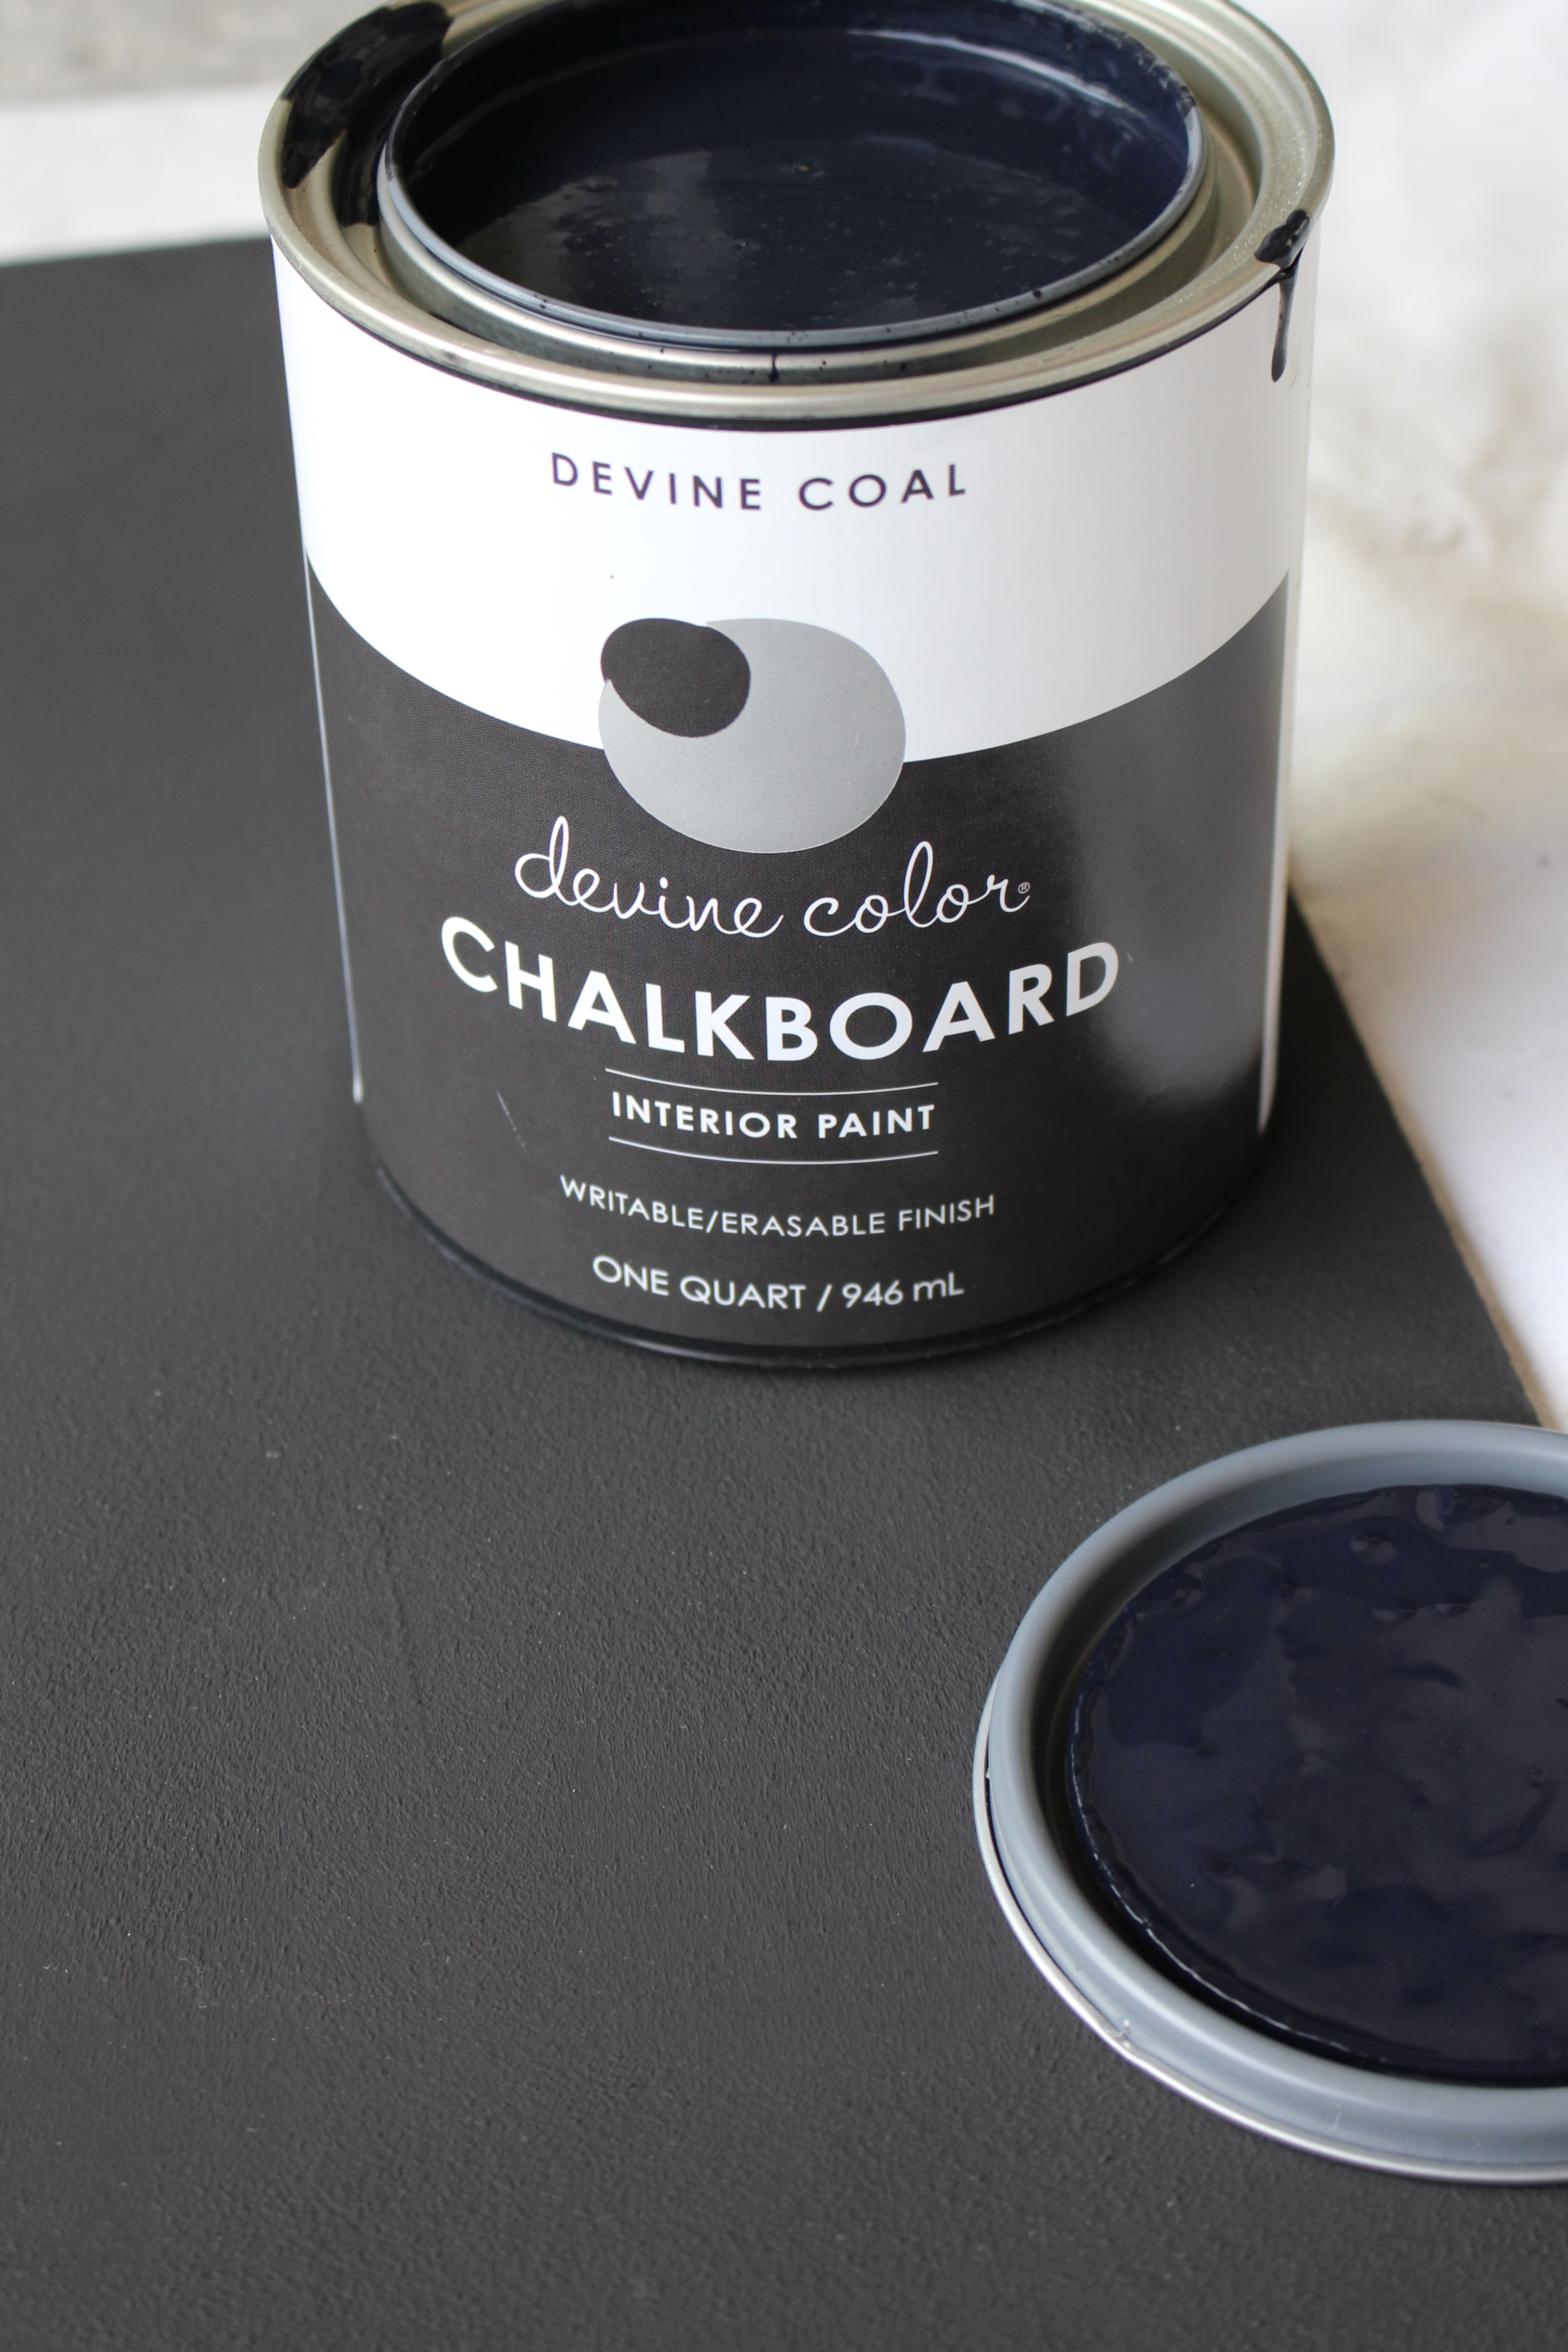 Farmhouse Chalkboard- Recycling a Vintage Frame into a Chalkboard- Vintage frame- Using a frame to make a chalkboard- chalkboard- Devine Color Paint- Making a chalkboard- chalkboard paint project- farmhouse style frame- DIY- Craft- white chalkboard- chalkboard art for summer